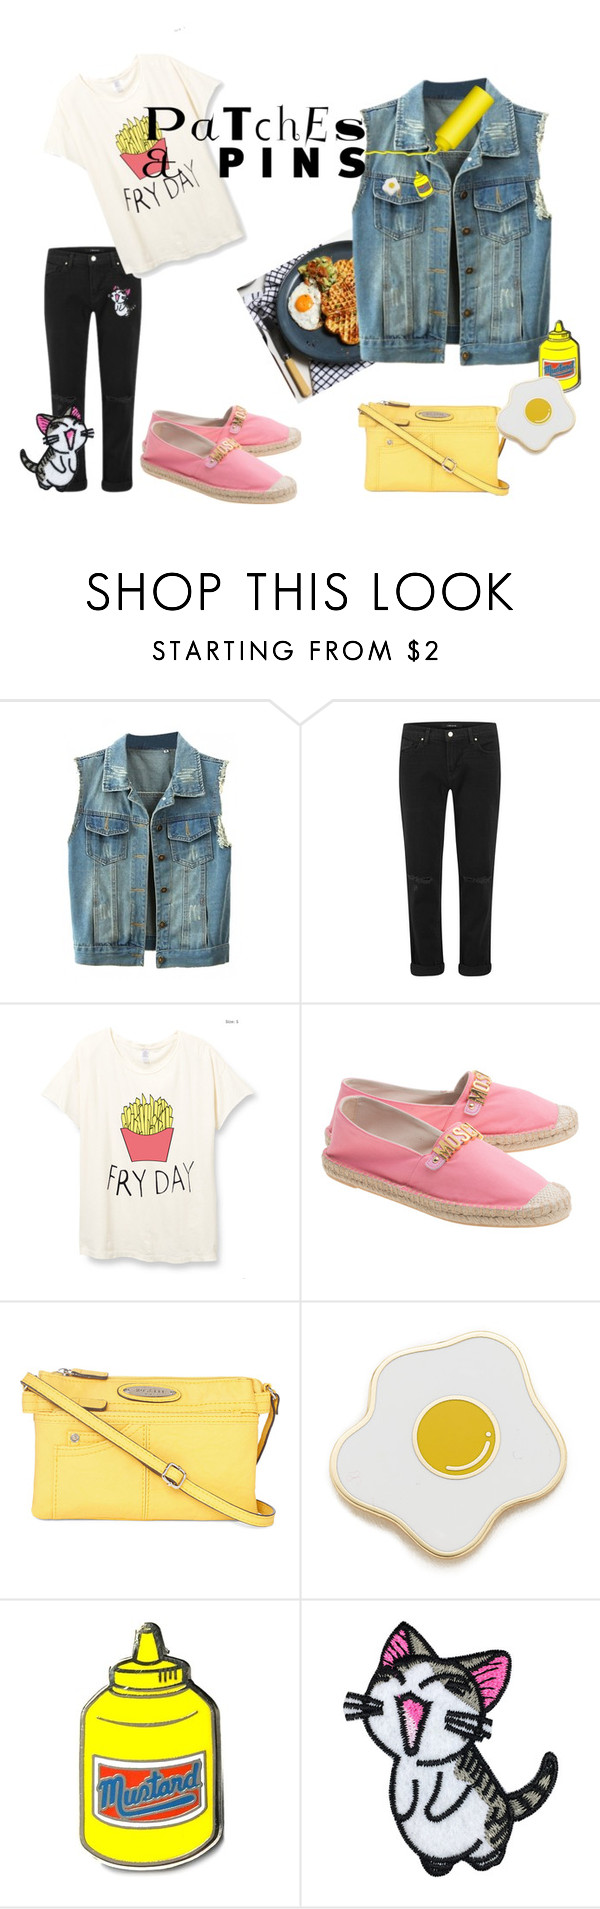 """Patches and Pins - Fry Day"" by thaliatria ❤ liked on Polyvore featuring WithChic, J Brand, Moschino, Rosetti, Georgia Perry, PINTRILL and patchesandpins"